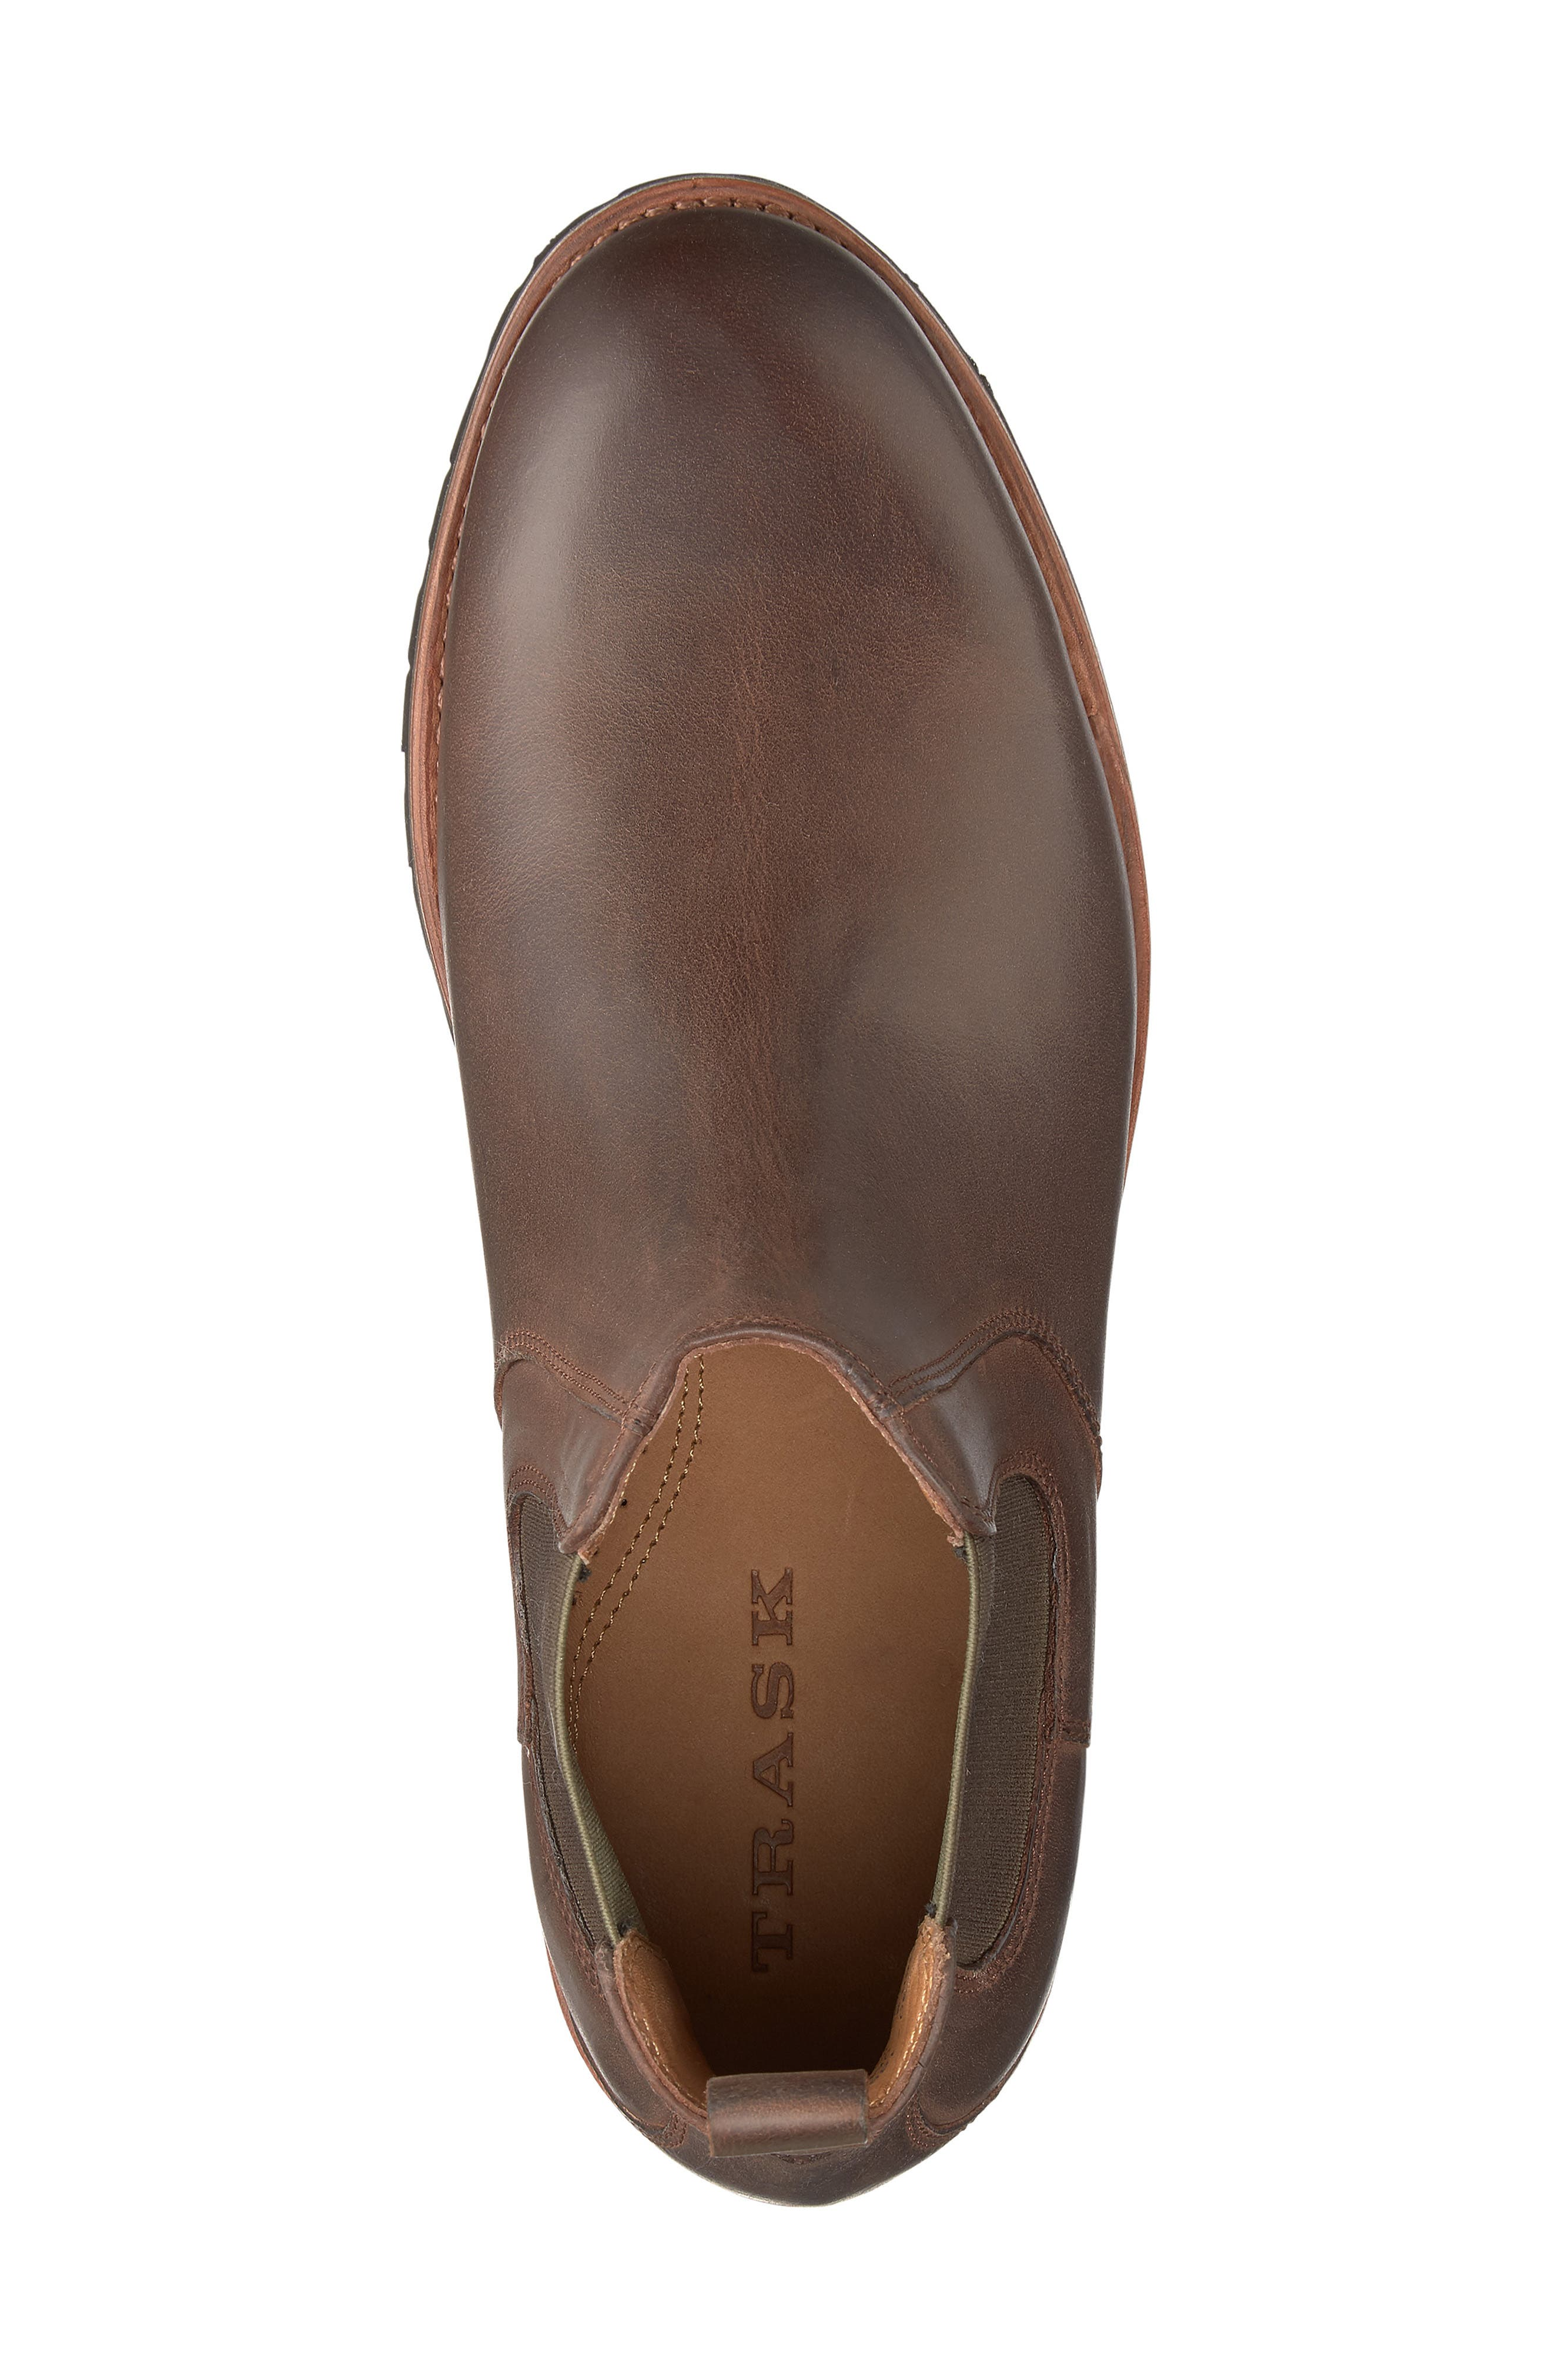 Hastings Lugged Chelsea Boot,                             Alternate thumbnail 5, color,                             BROWN LEATHER